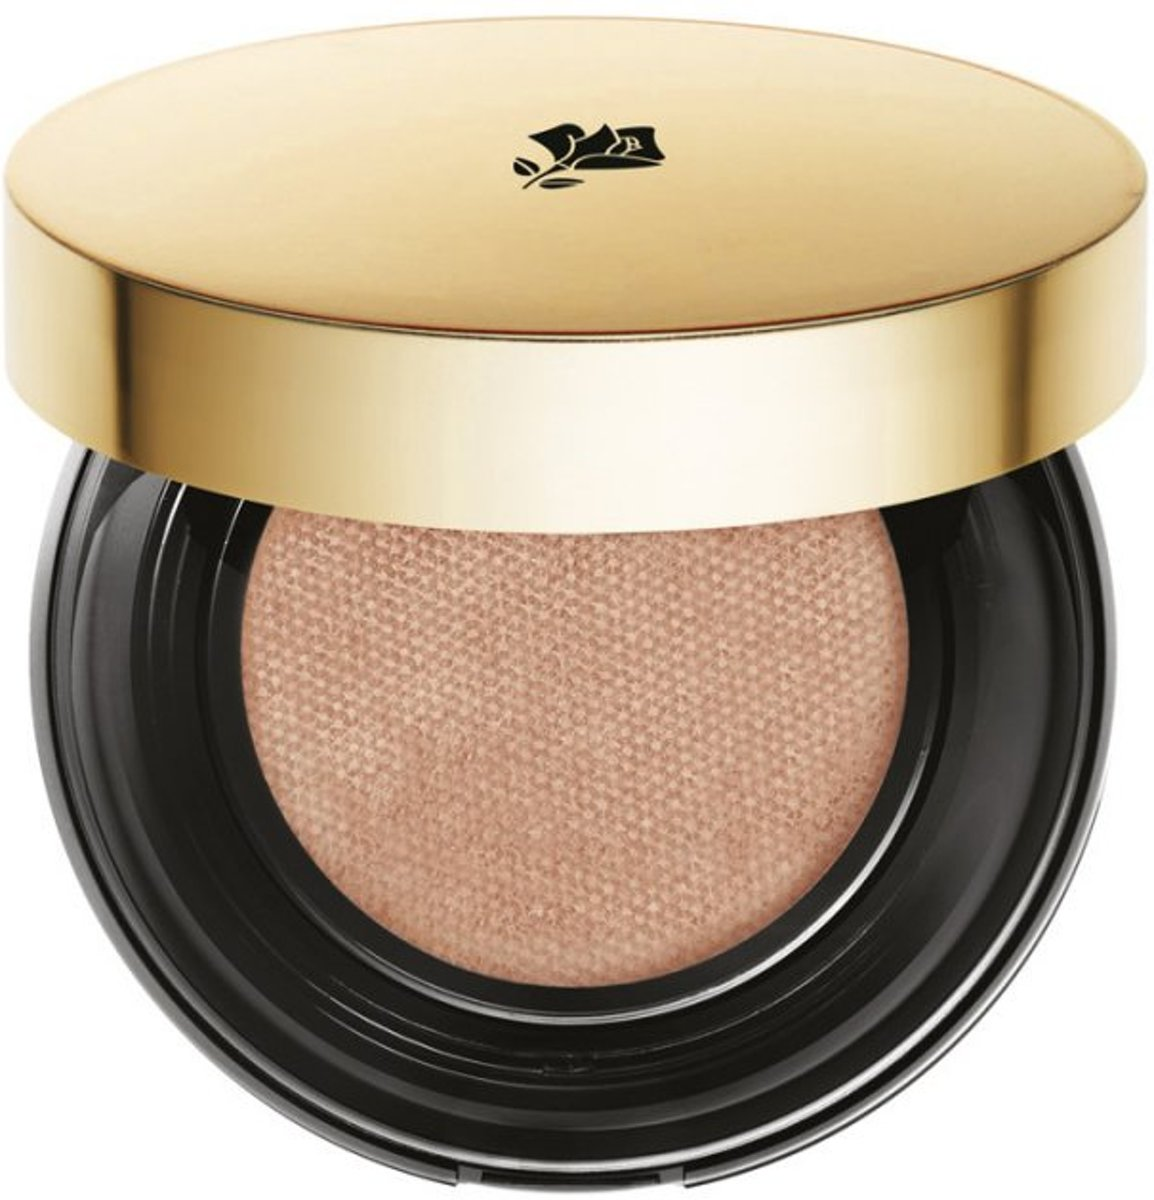 Lancôme Teint Idole Ultra Cushion Foundation 13 gr - 015 - Ivoire